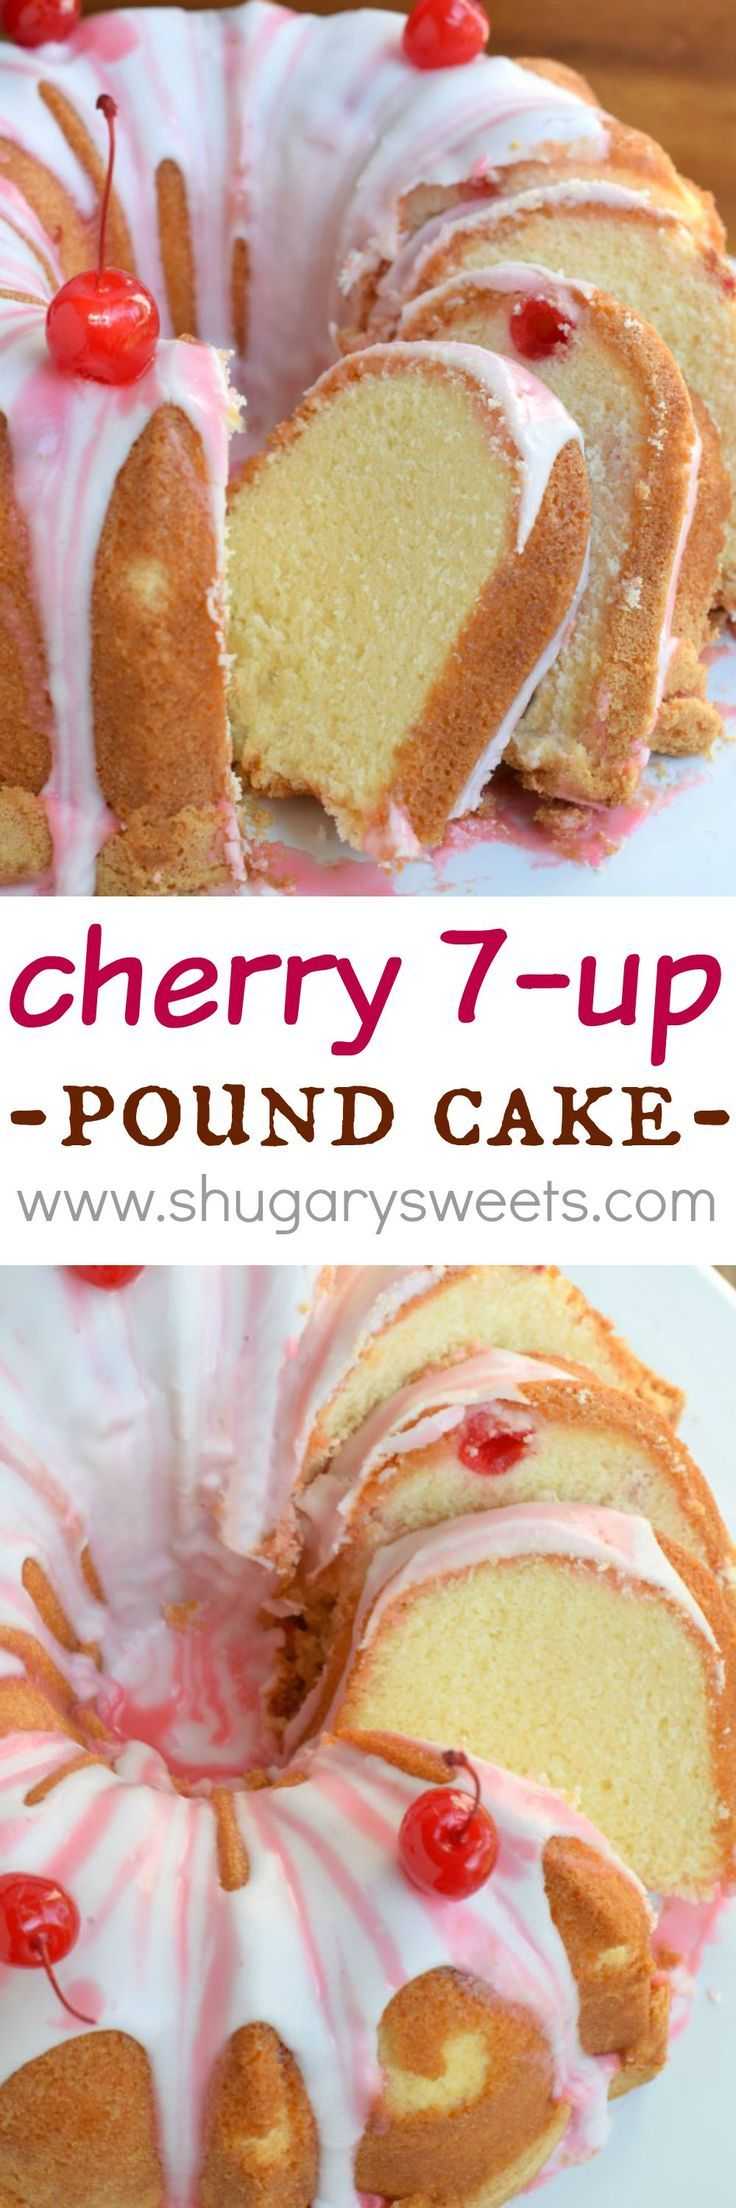 Cherry 7 Up Pound Cake is a classic, yet decadent treat. The crunchy crust with the sweet glaze makes this cake irresistible!